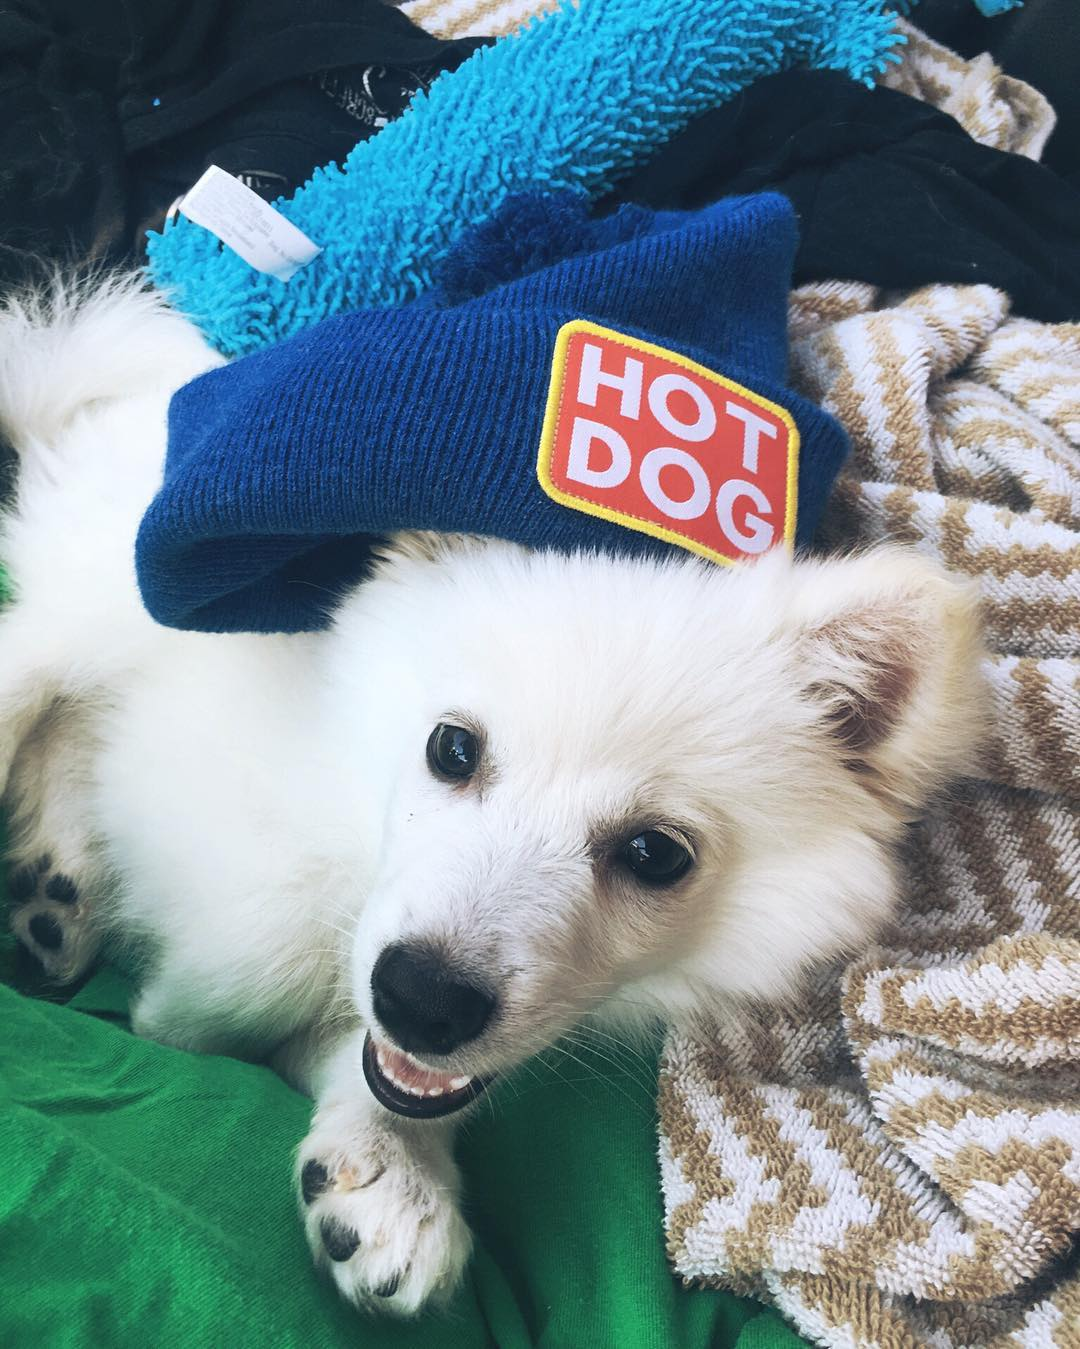 The newest @cobradogs employee #LouisDoge thinks that hot dogs are the most patriotic food. We agree! #coalheadwear #ViceBeanie